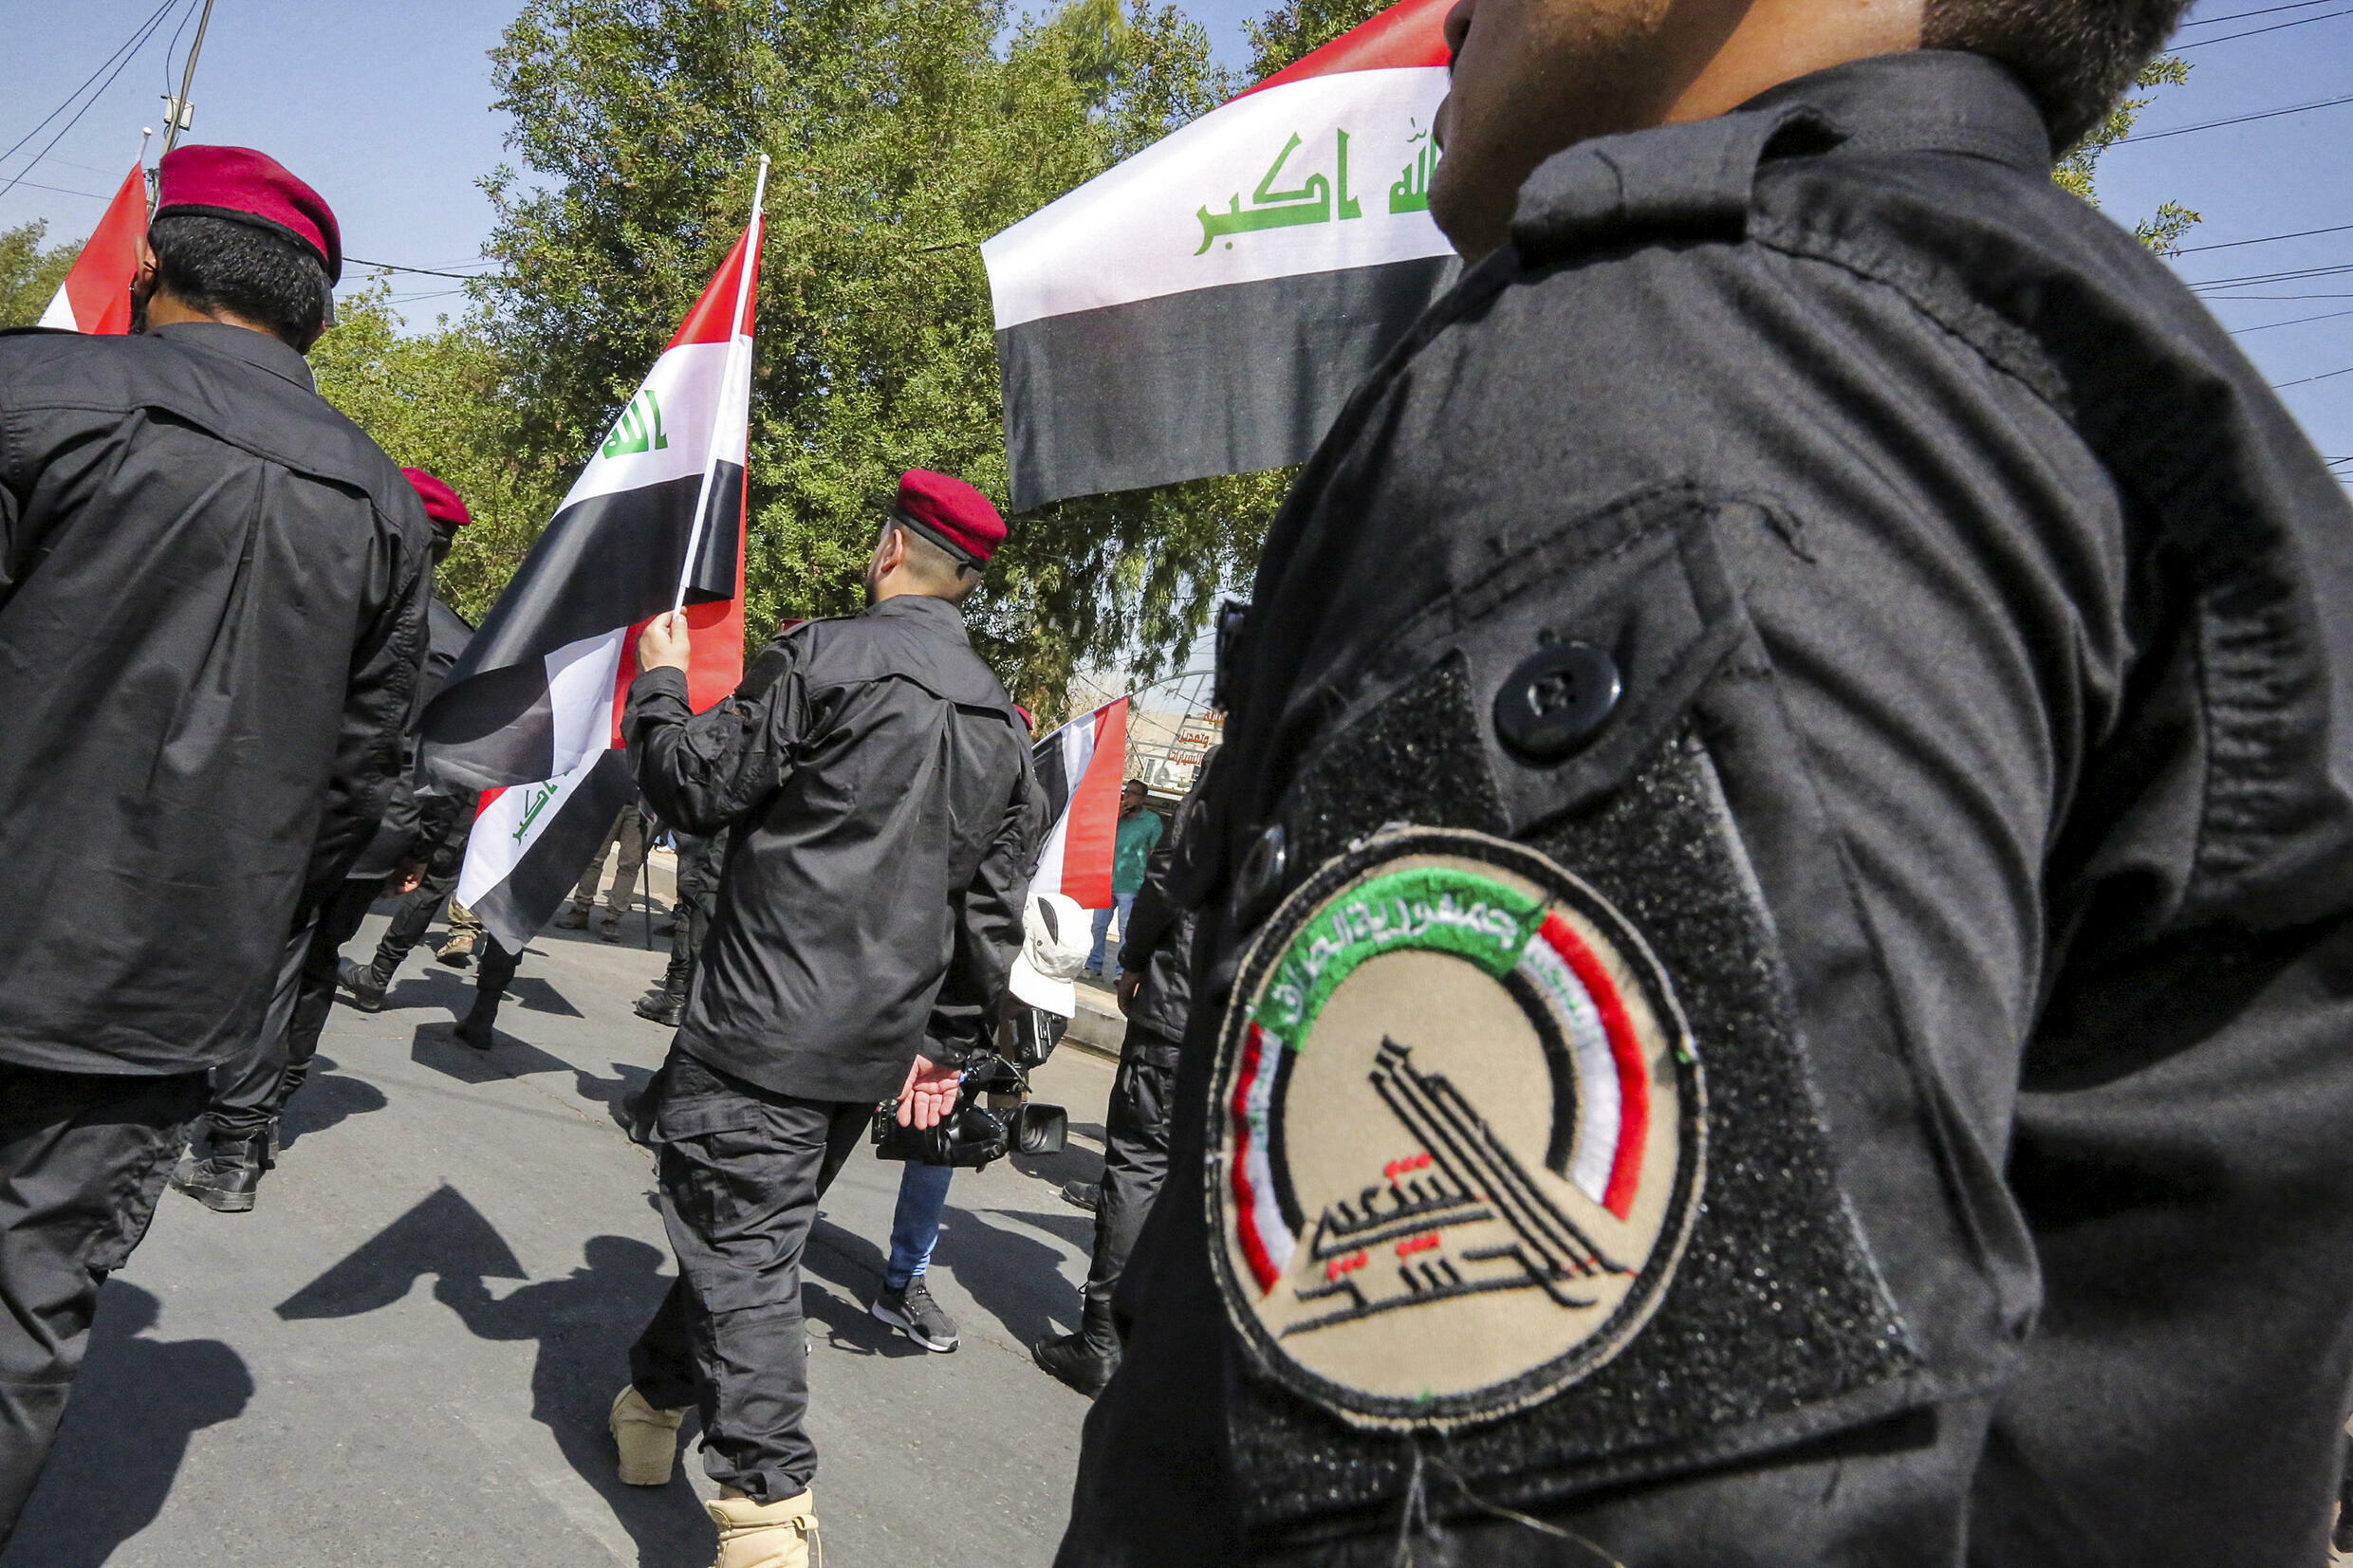 The Hached al-Shaabi, or Popular Mobilization Forces, formed in 2014 to defeat the Islamic State group